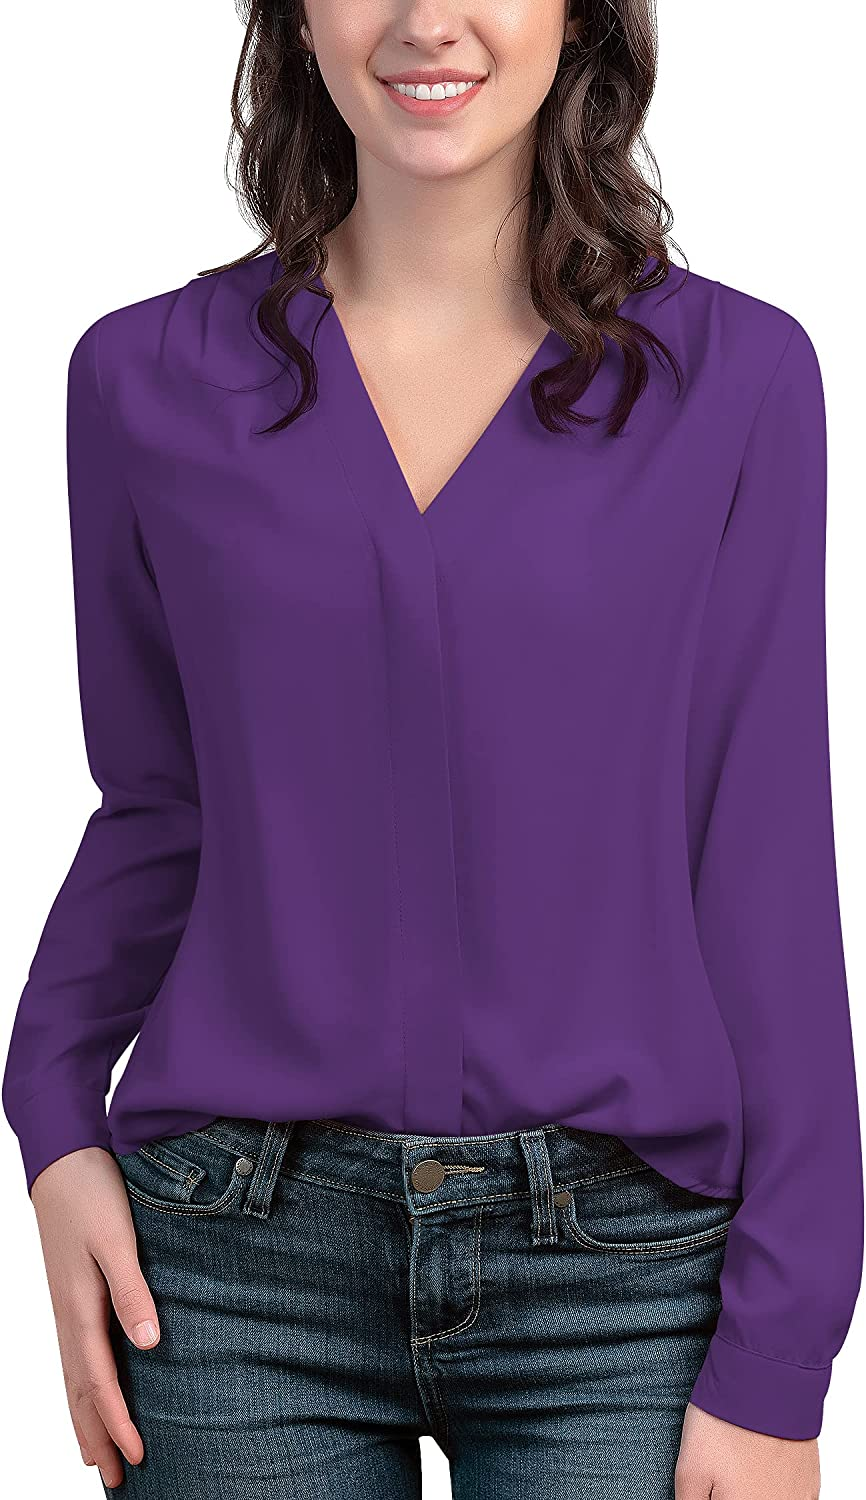 roswear Women's Chiffon price Wrap Max 90% OFF Front Solid Blouse V Neck Shirt